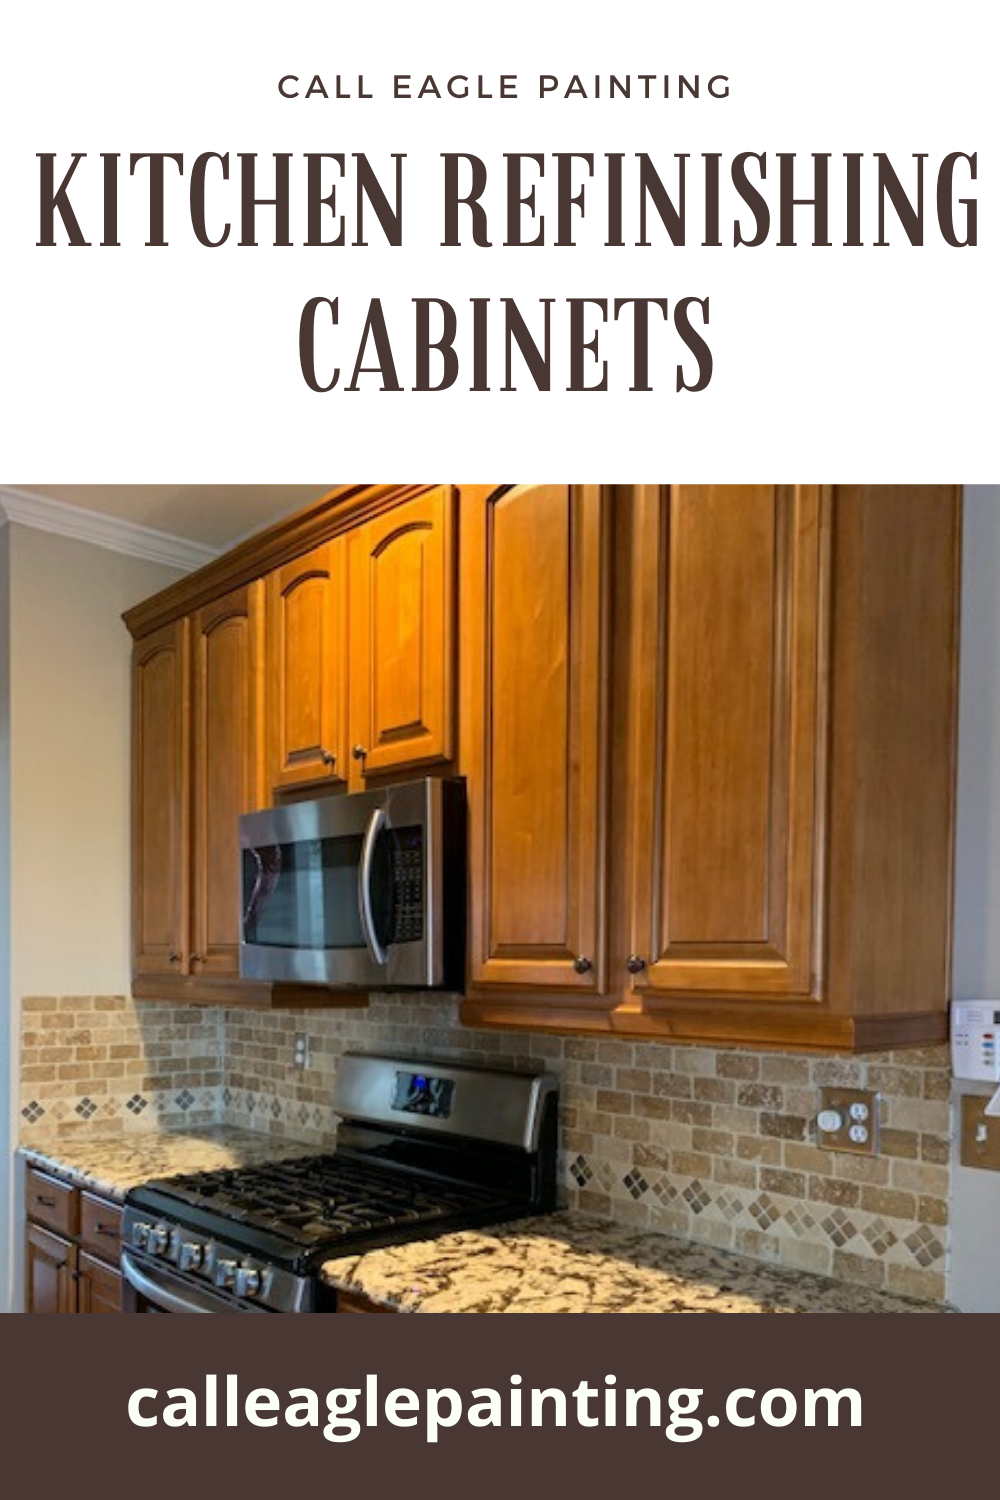 Kitchen Cabinet Painting Atlanta,GA - Repainting Kitchen ...